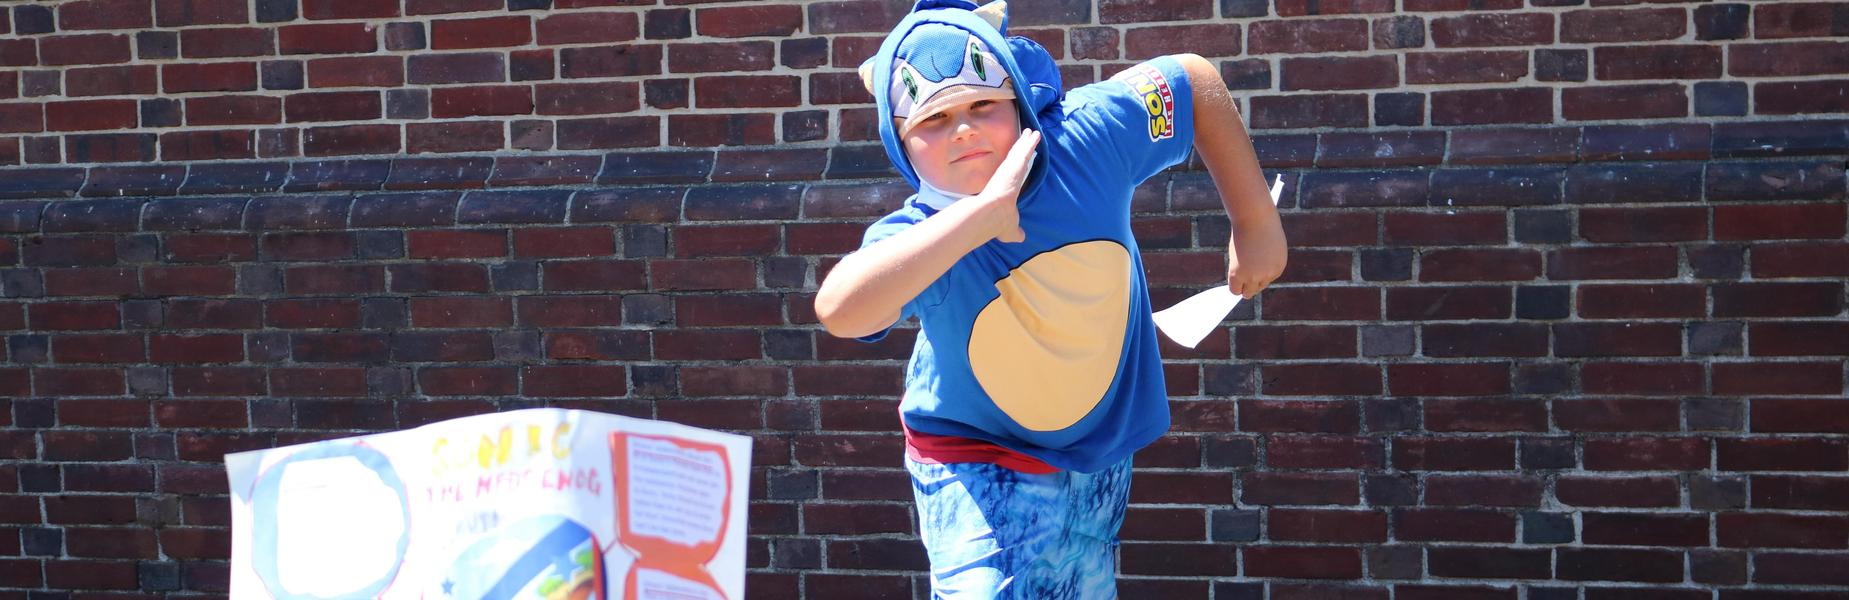 Franklin 3rd grader strikes a pose as Sonic the Hedgehog during Living Wax Museum.